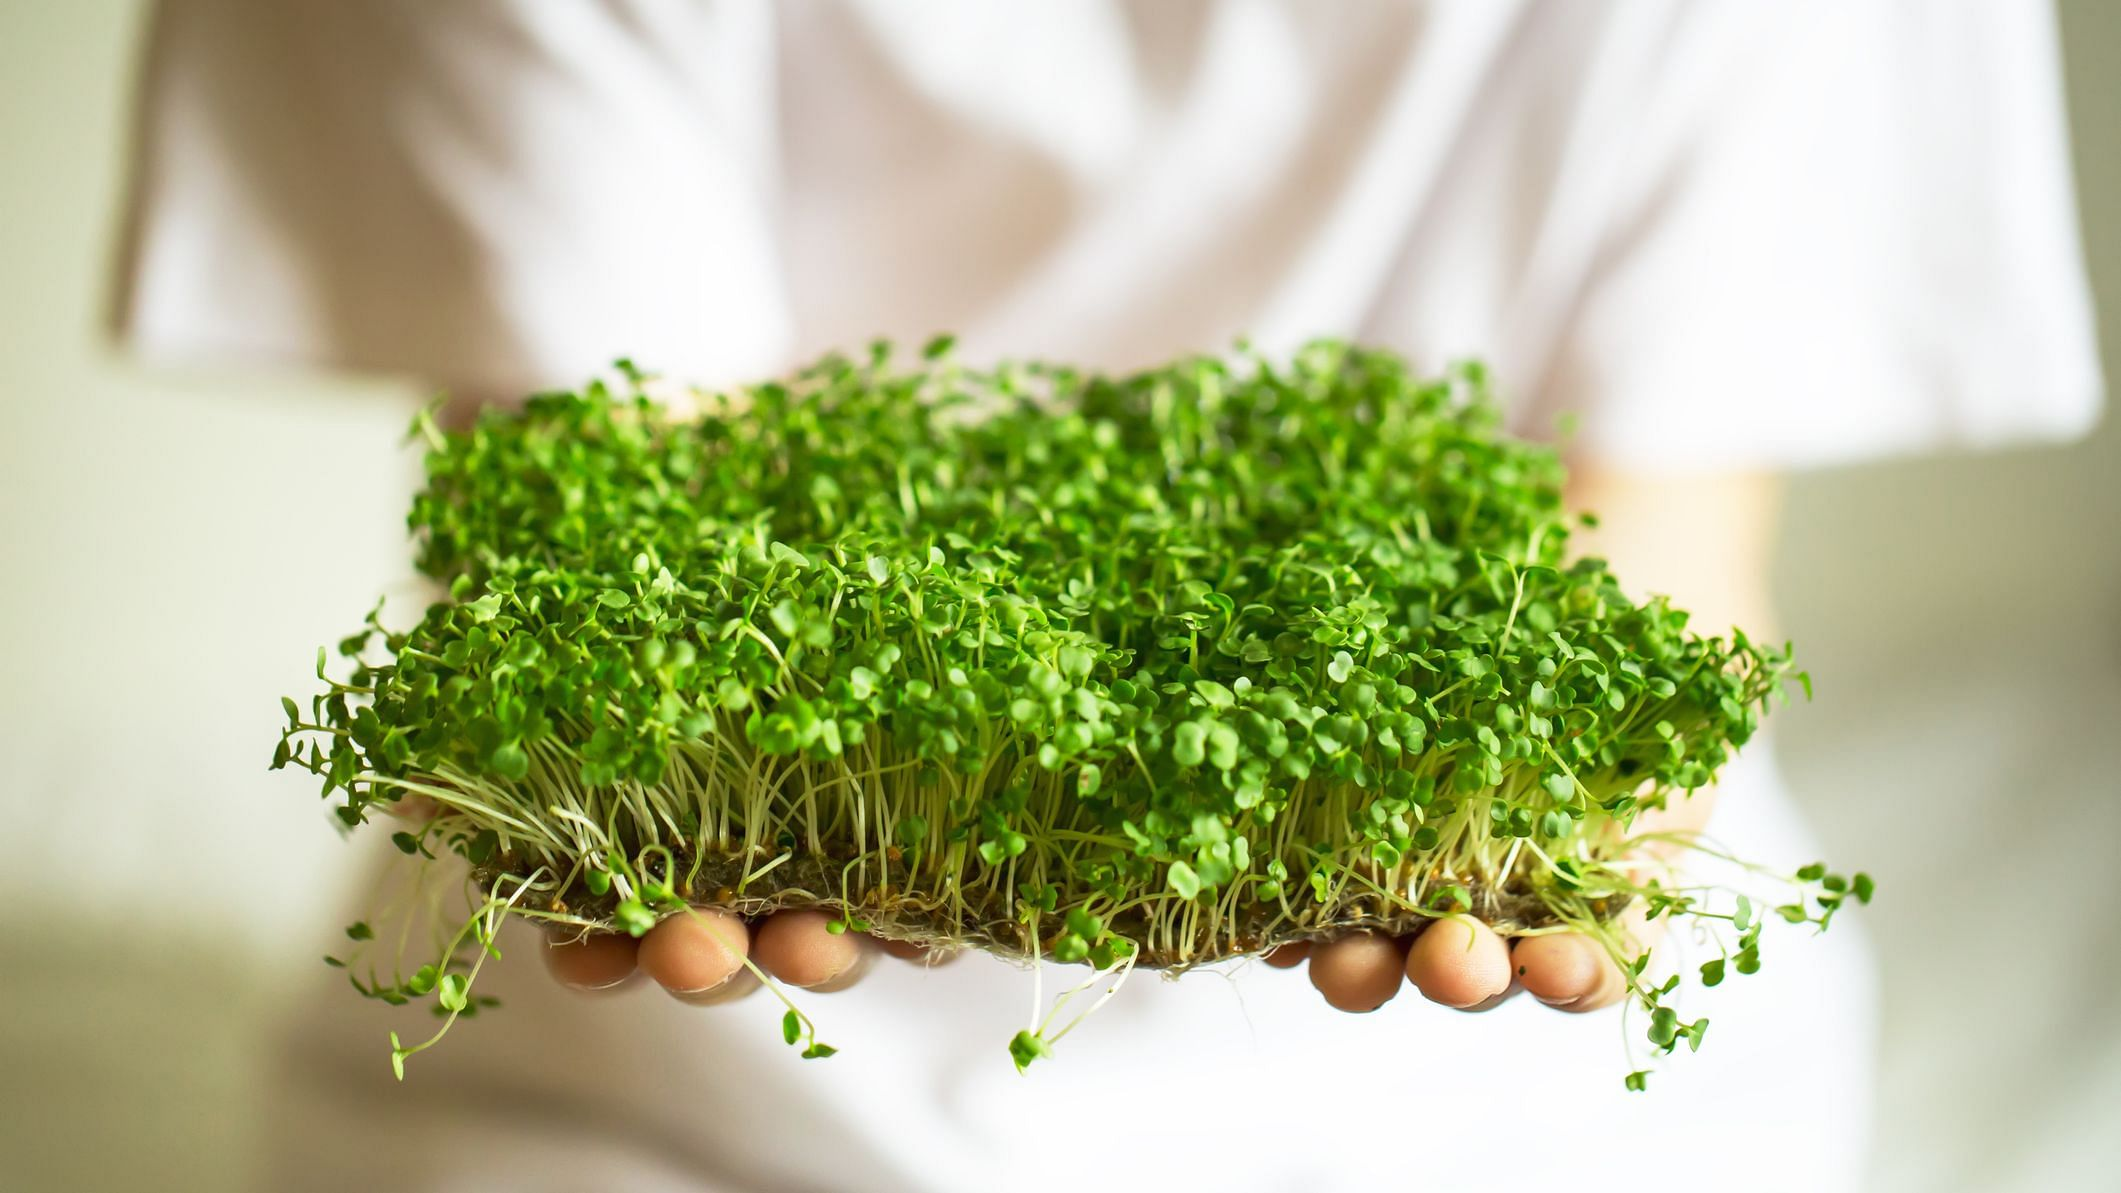 Why Microgreens are Important in our Diet